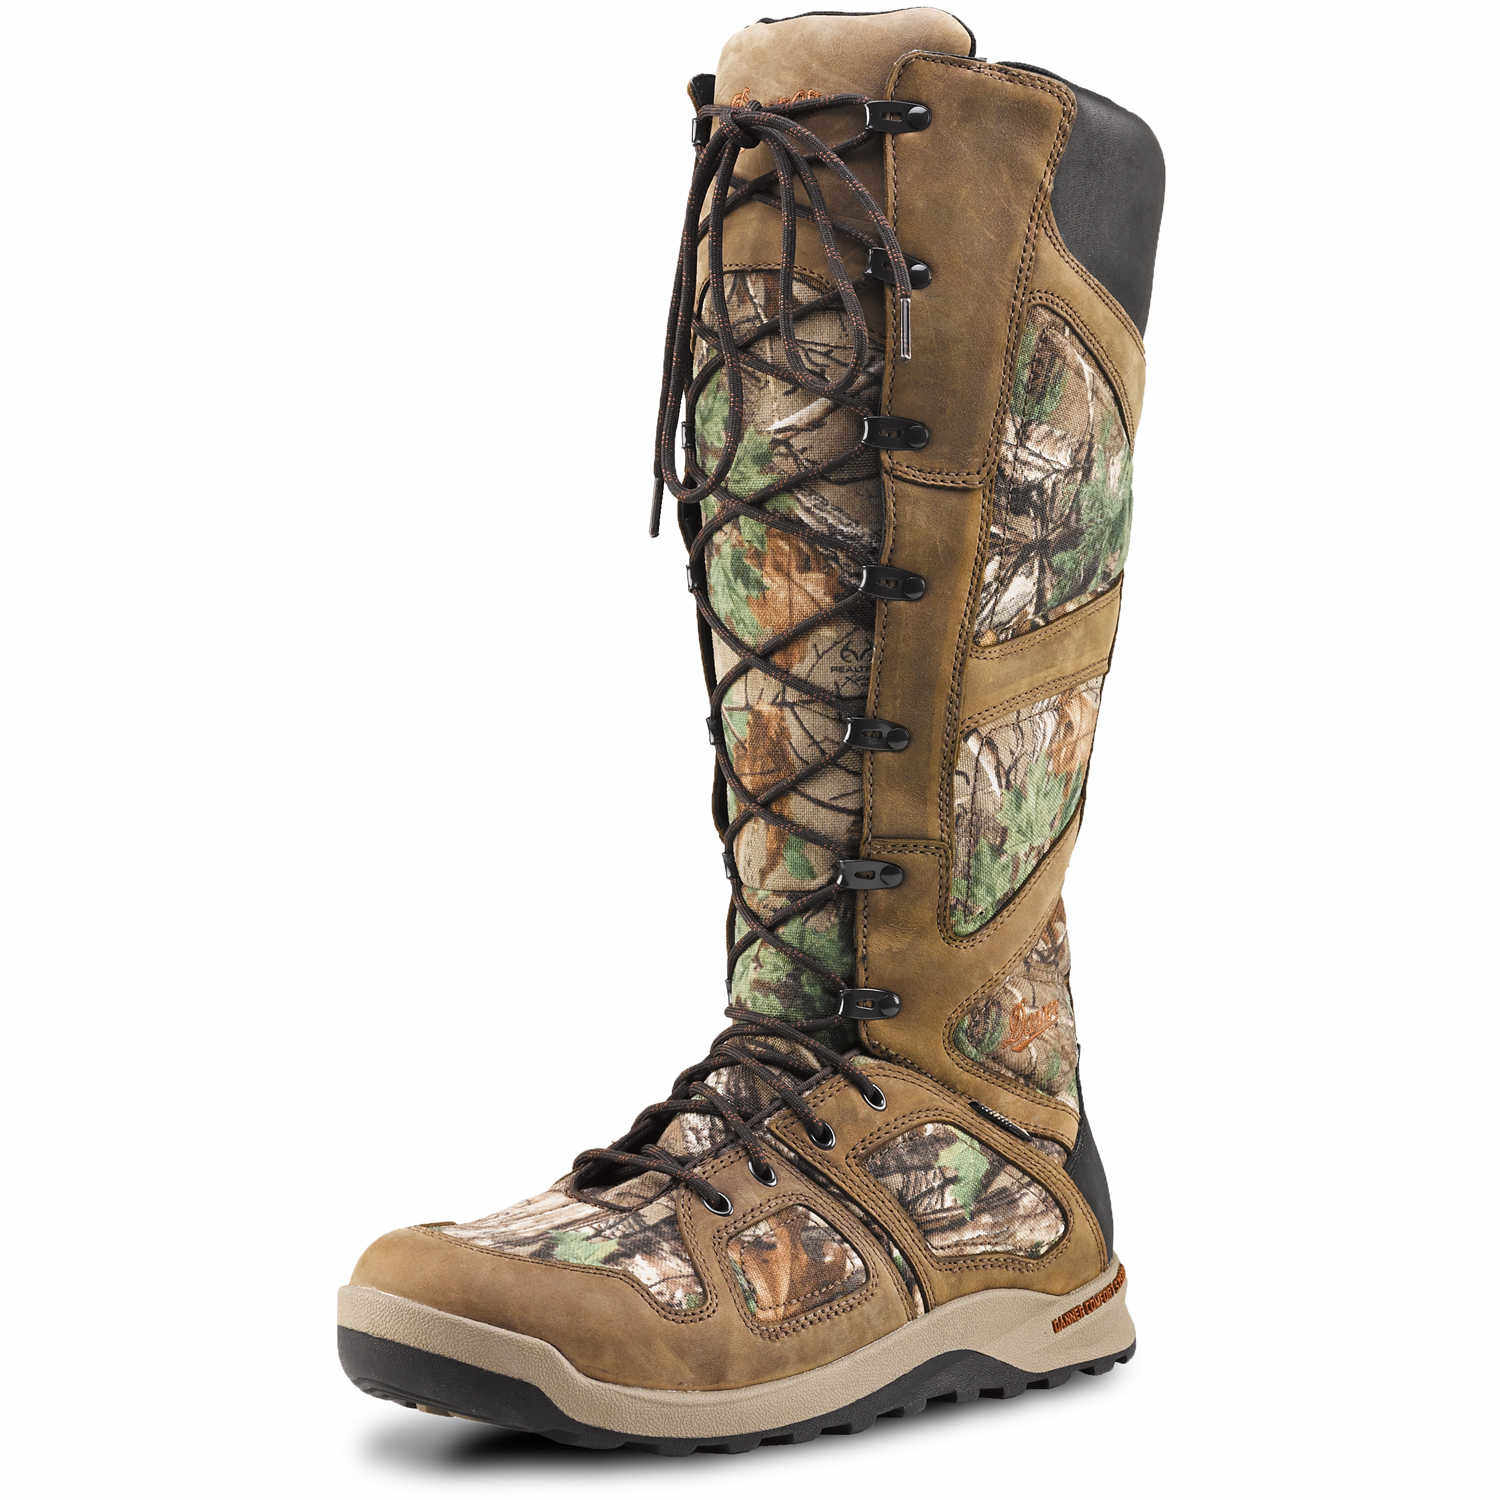 Danner Snake Boots Boot Yc